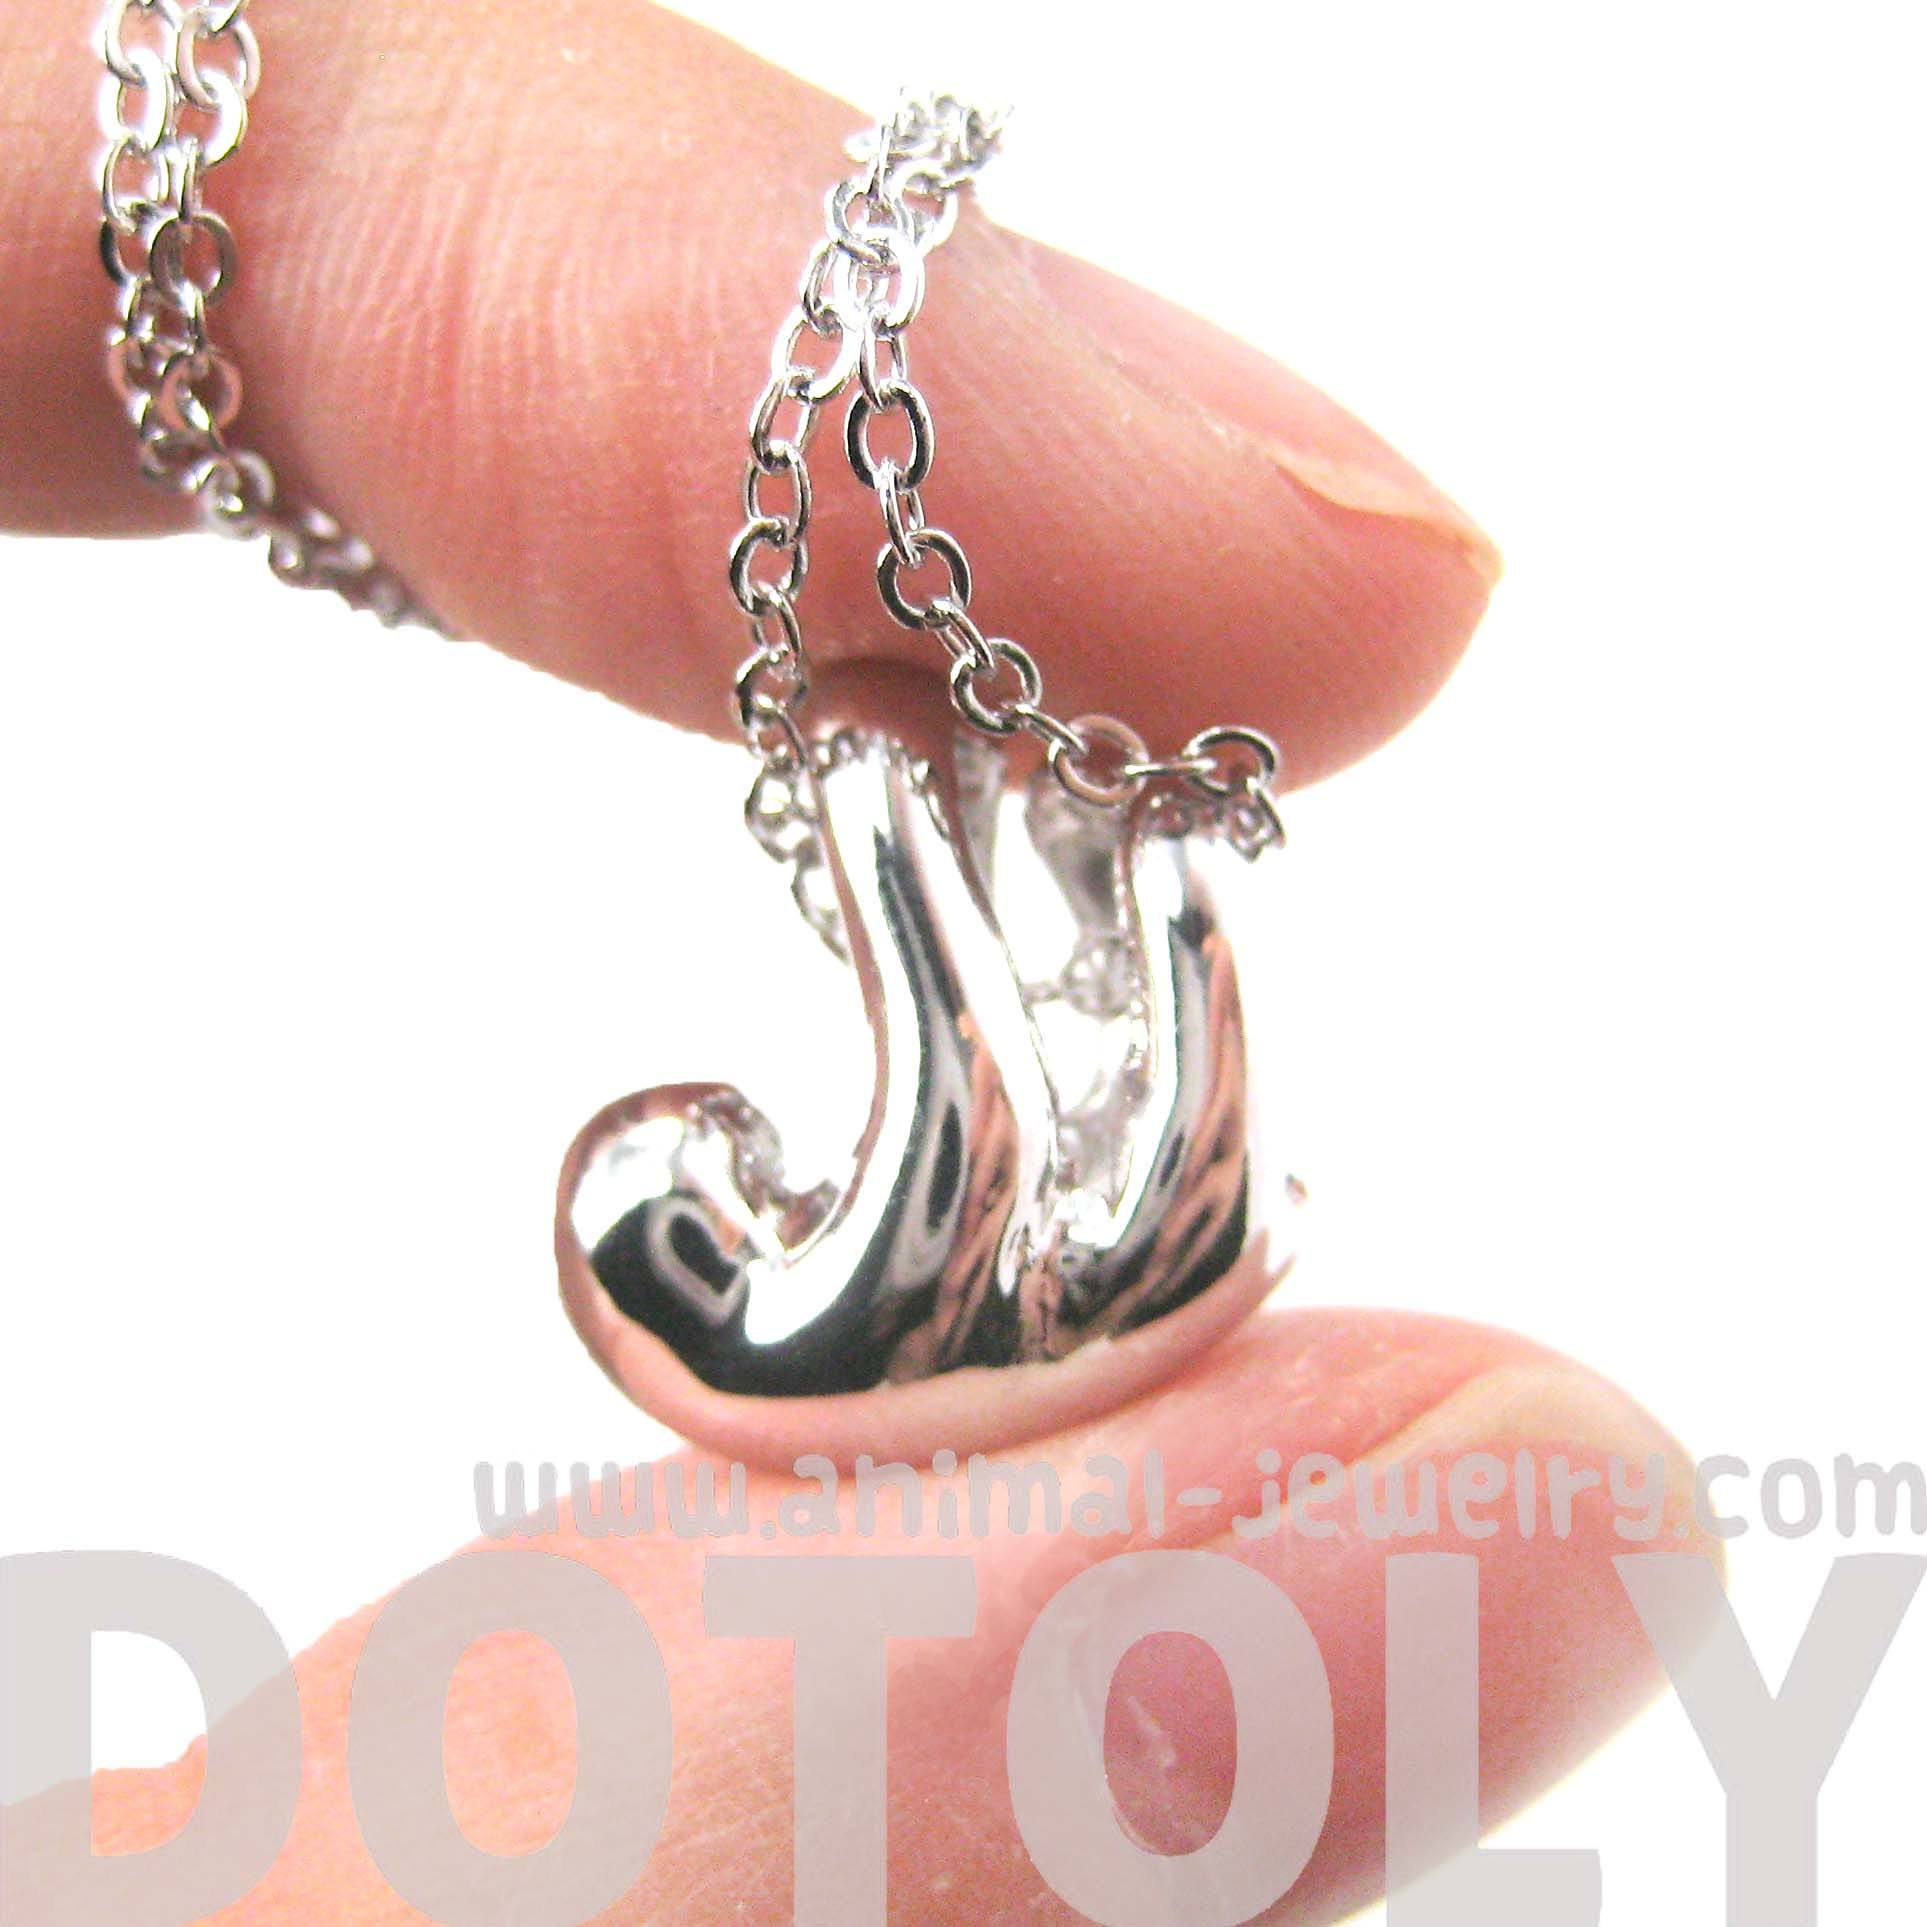 sleek-abstract-sloth-shaped-animal-pendant-necklace-in-silver-dotoly